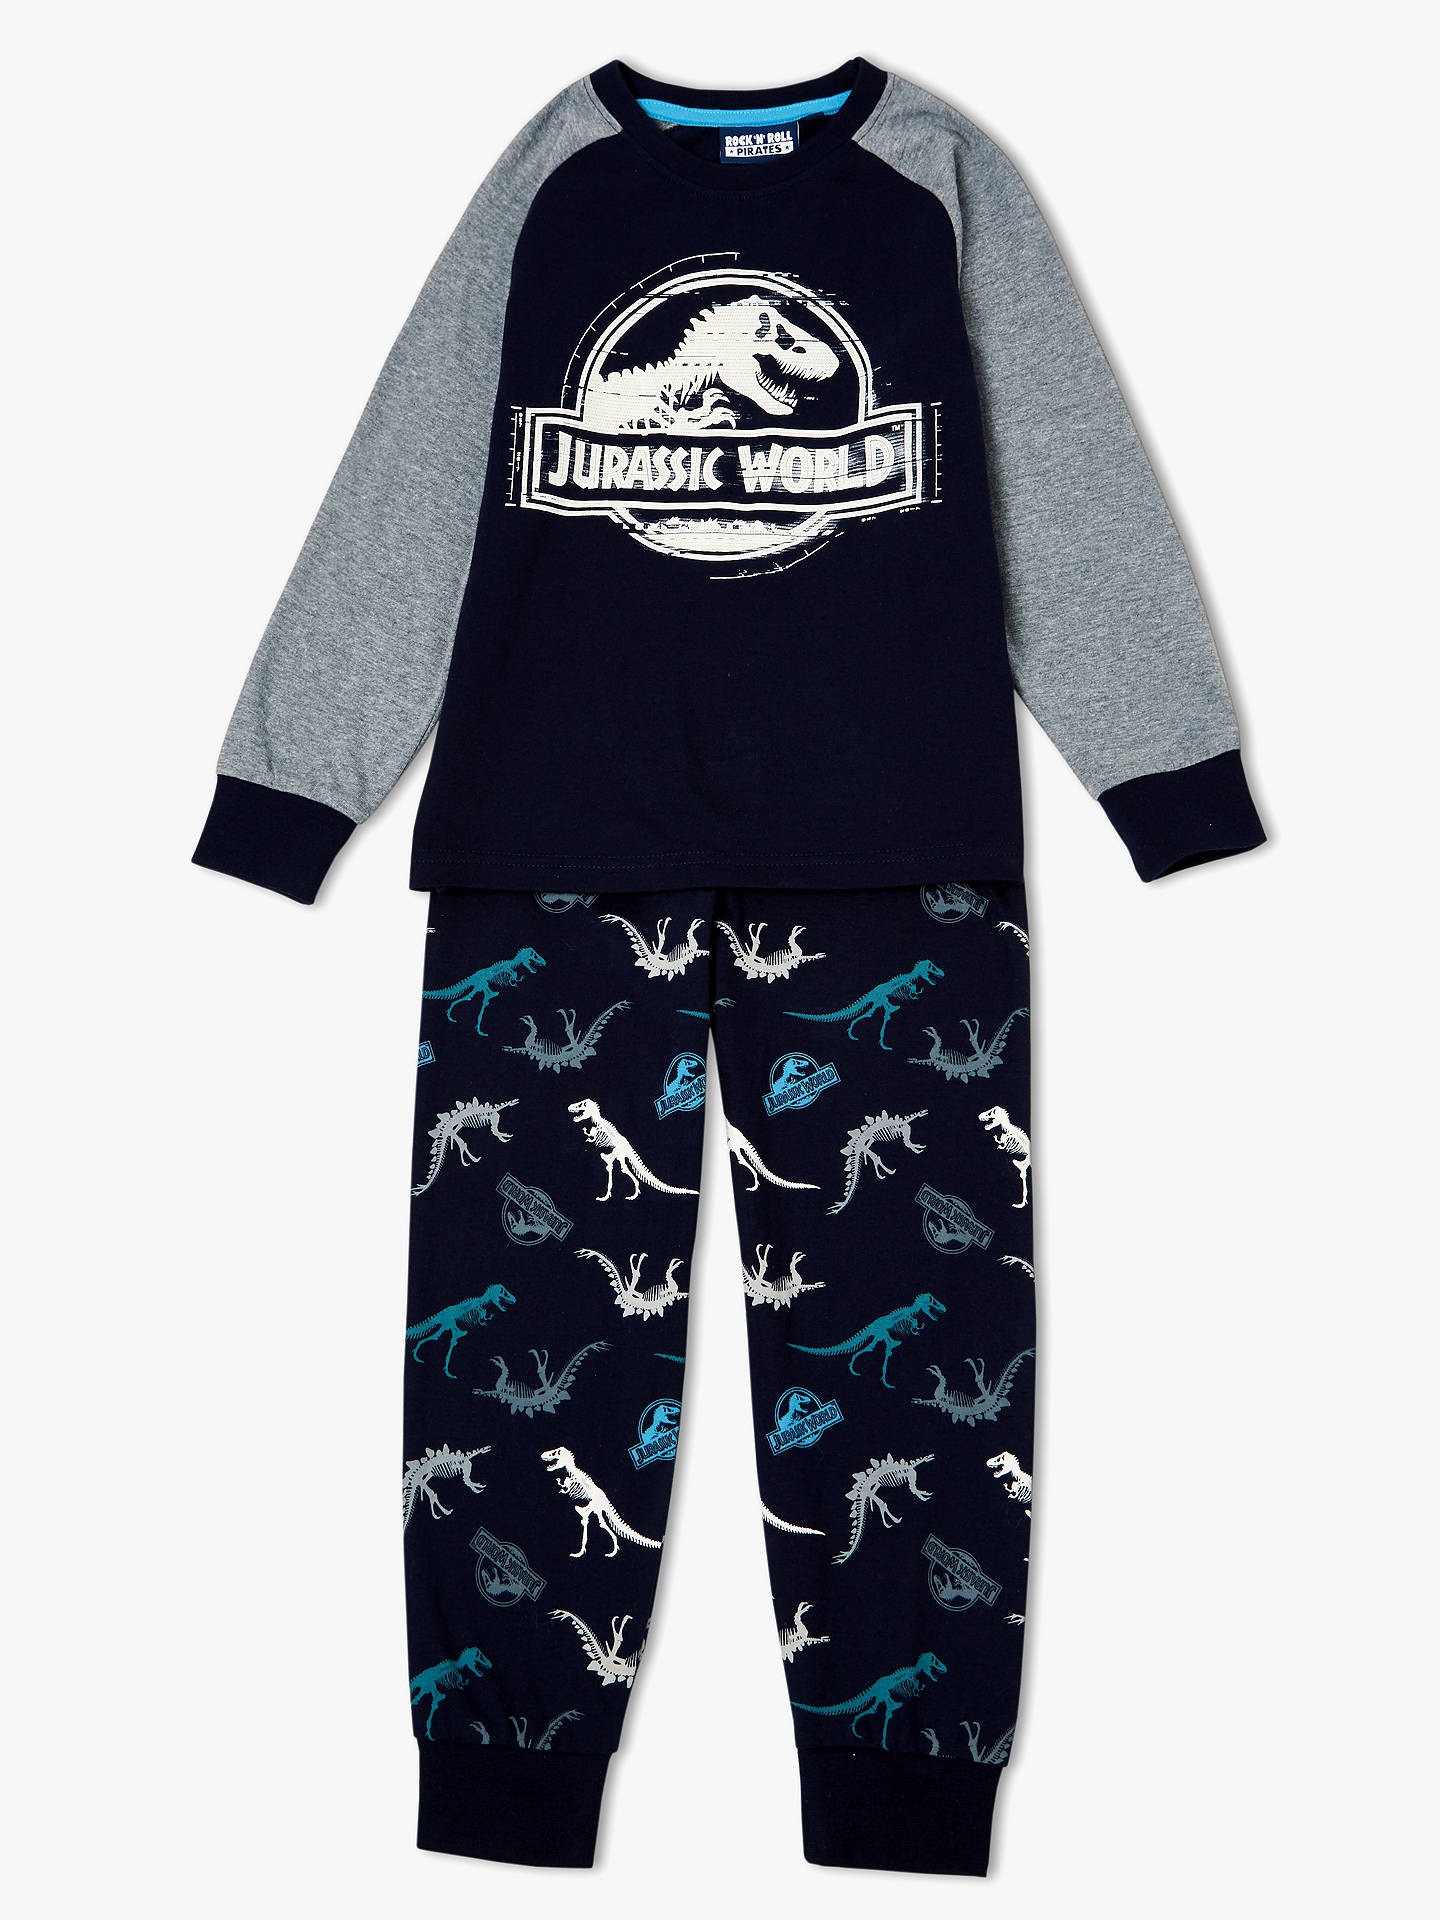 1e7555388 Buy Jurassic World Boys' Logo Pyjamas, Navy, 3-4 years Online at ...